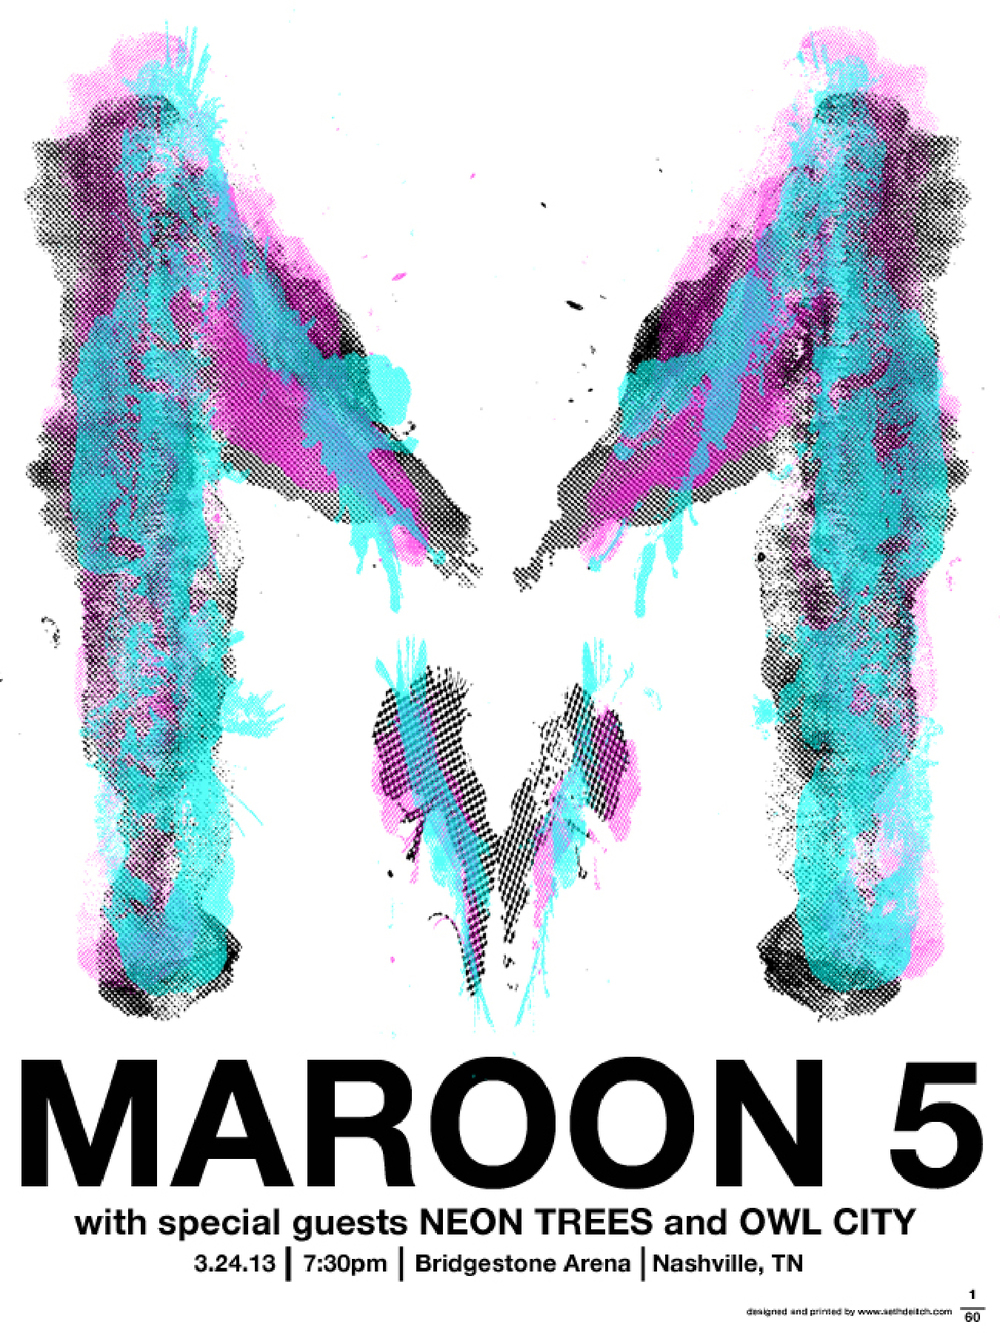 Maroon 5 with special guests Neon Trees and Owl City